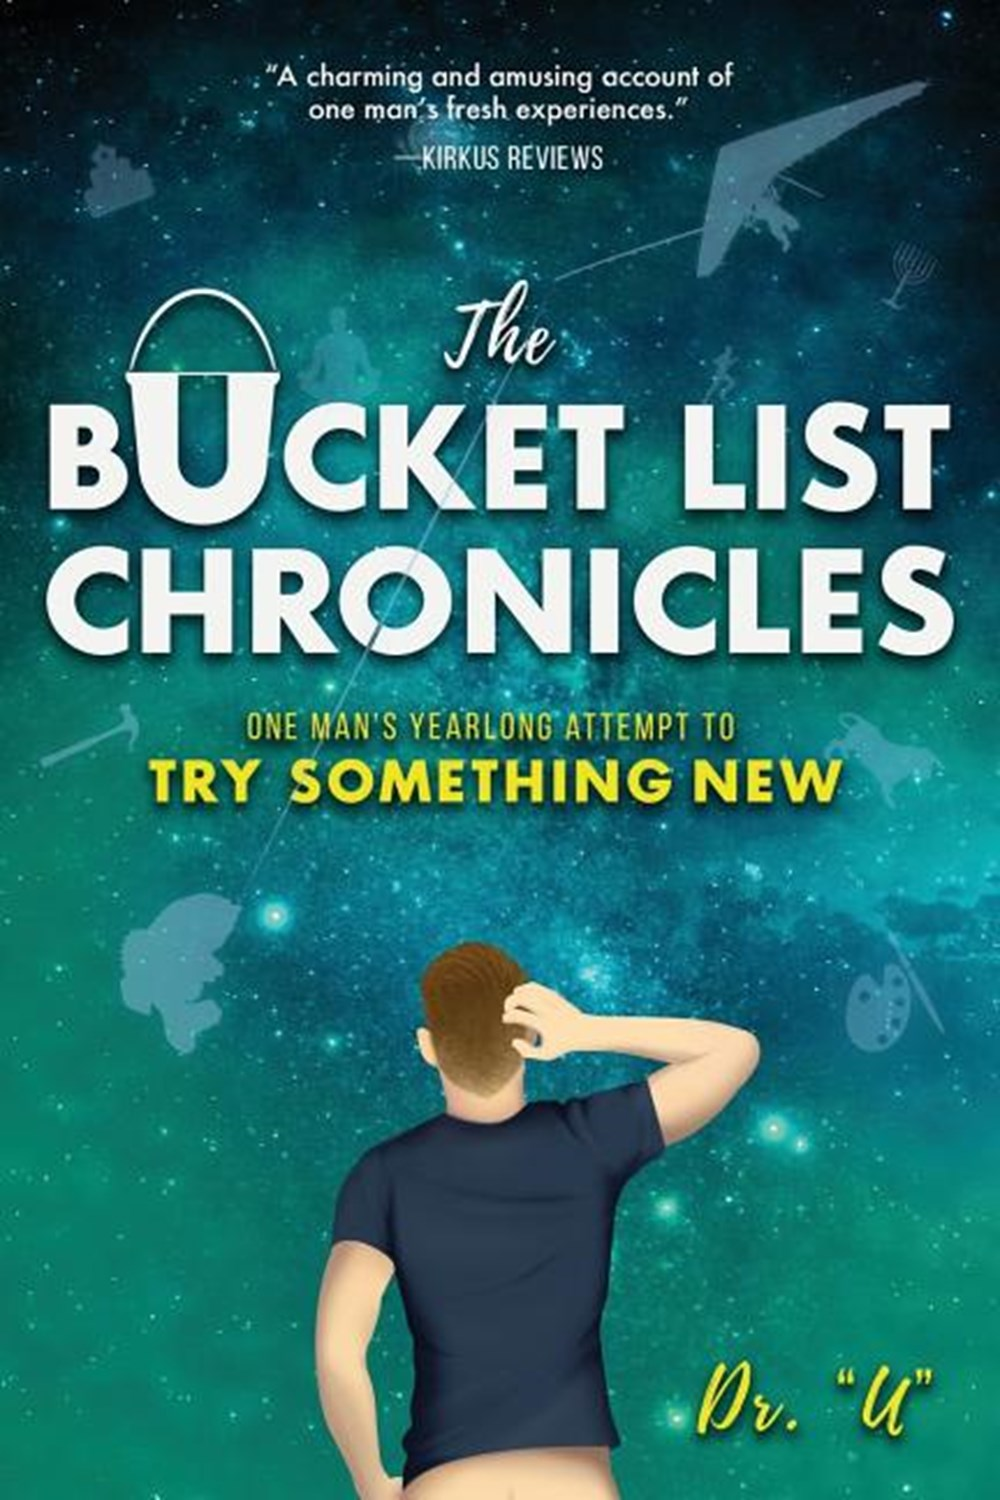 Bucket List Chronicles One Man's Yearlong Attempt to Try Something New